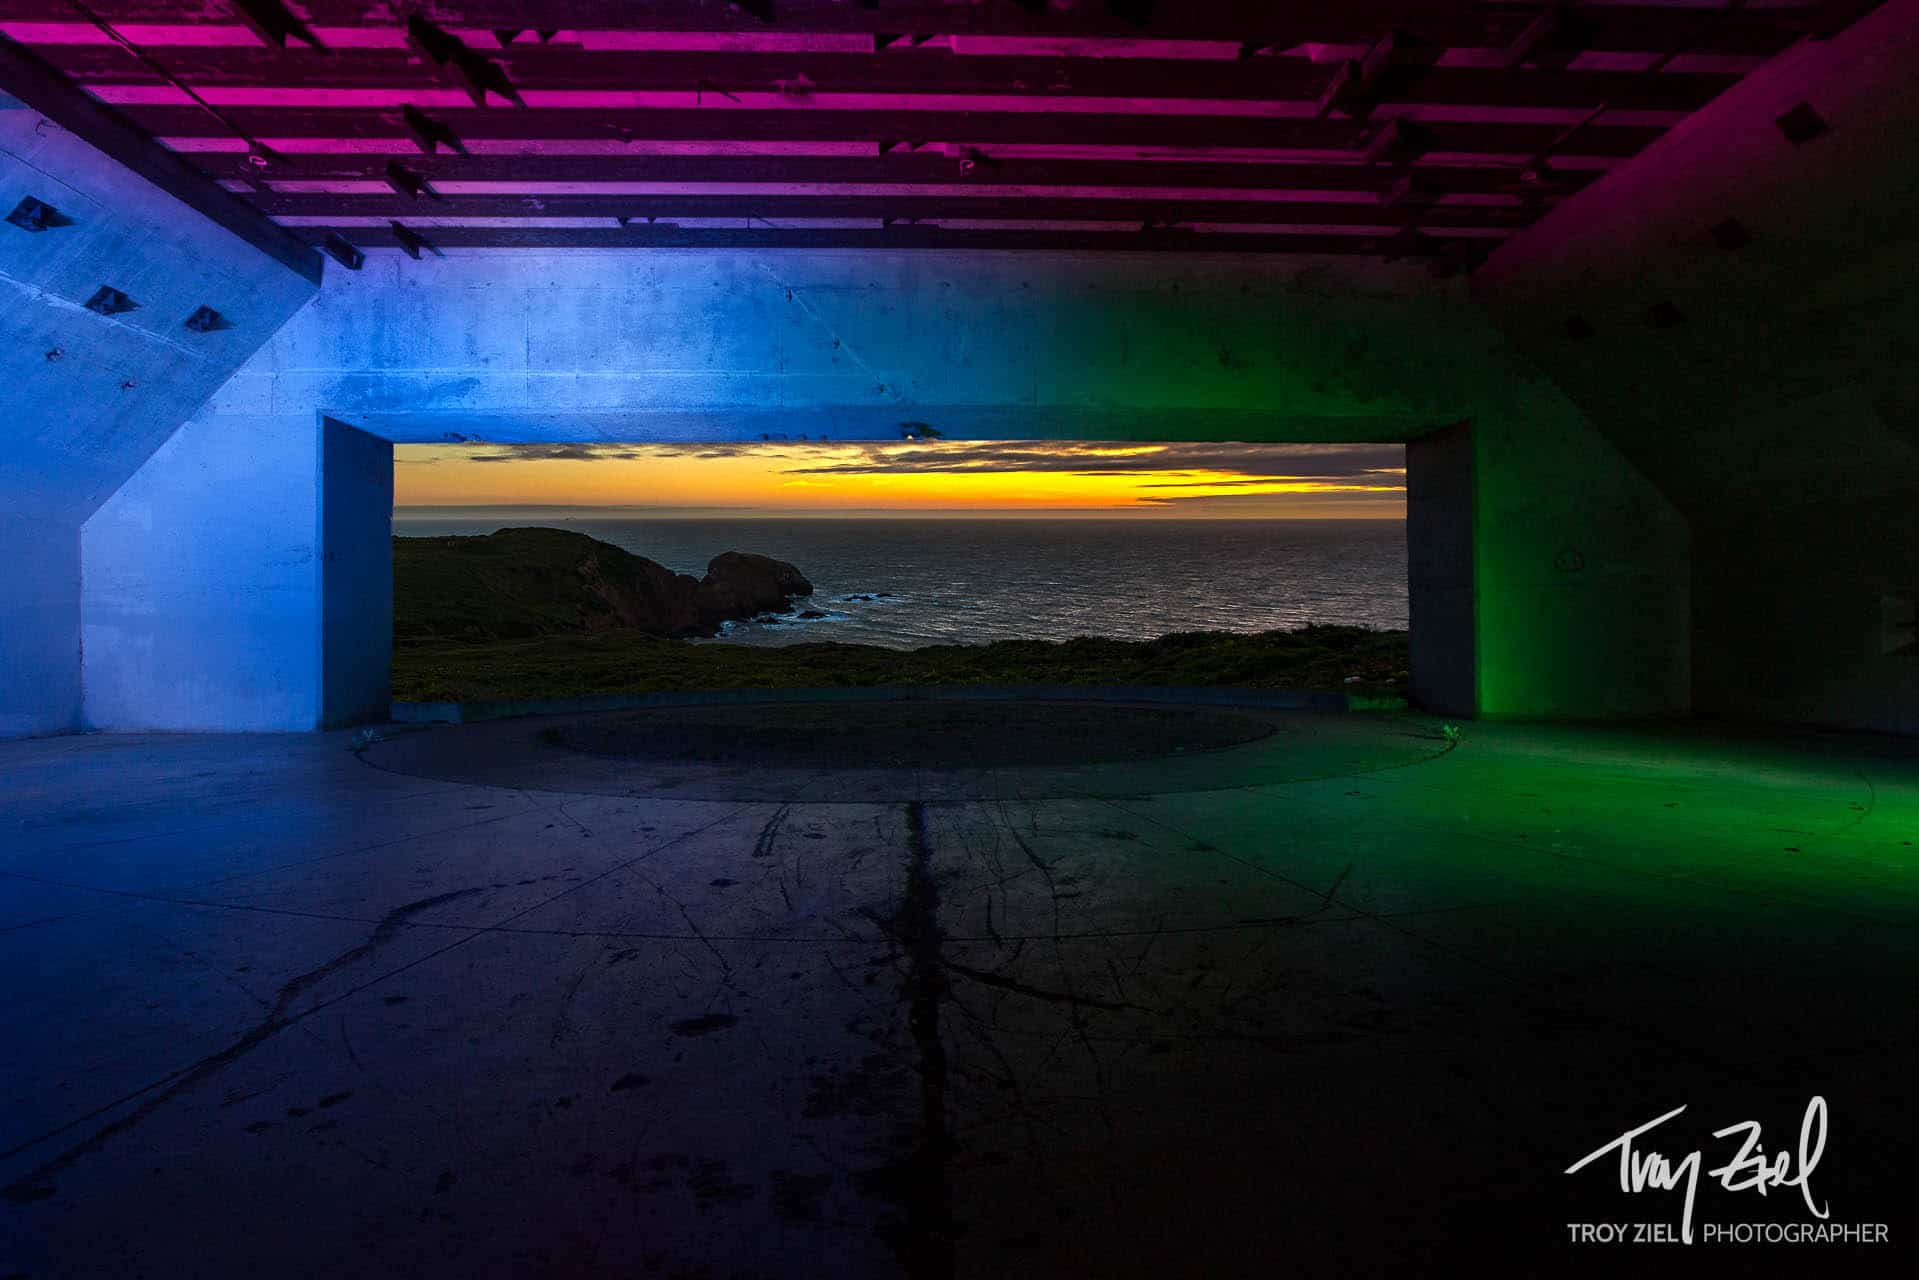 Light Painting in the Marin Headlands